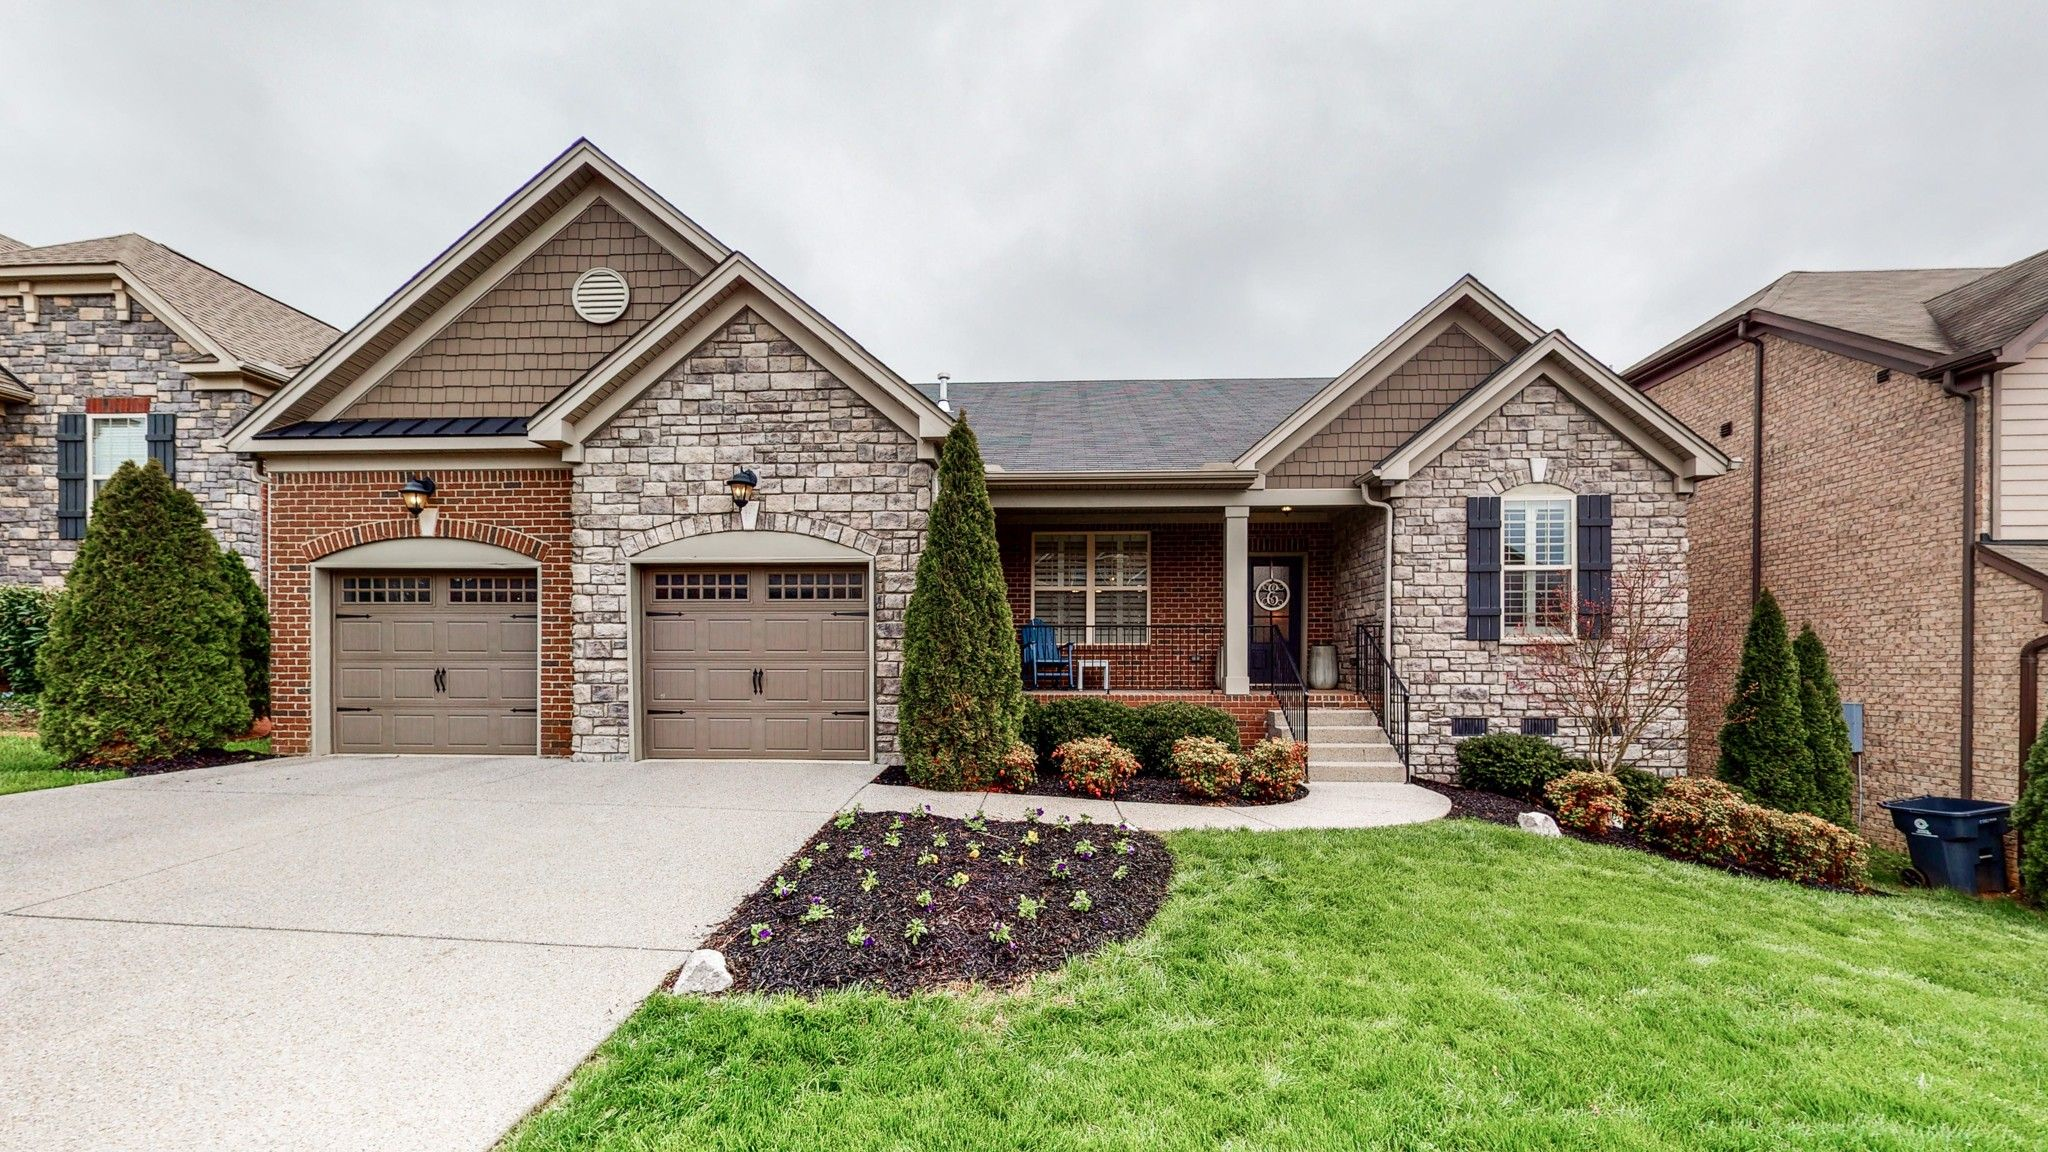 213 Foxley Ct